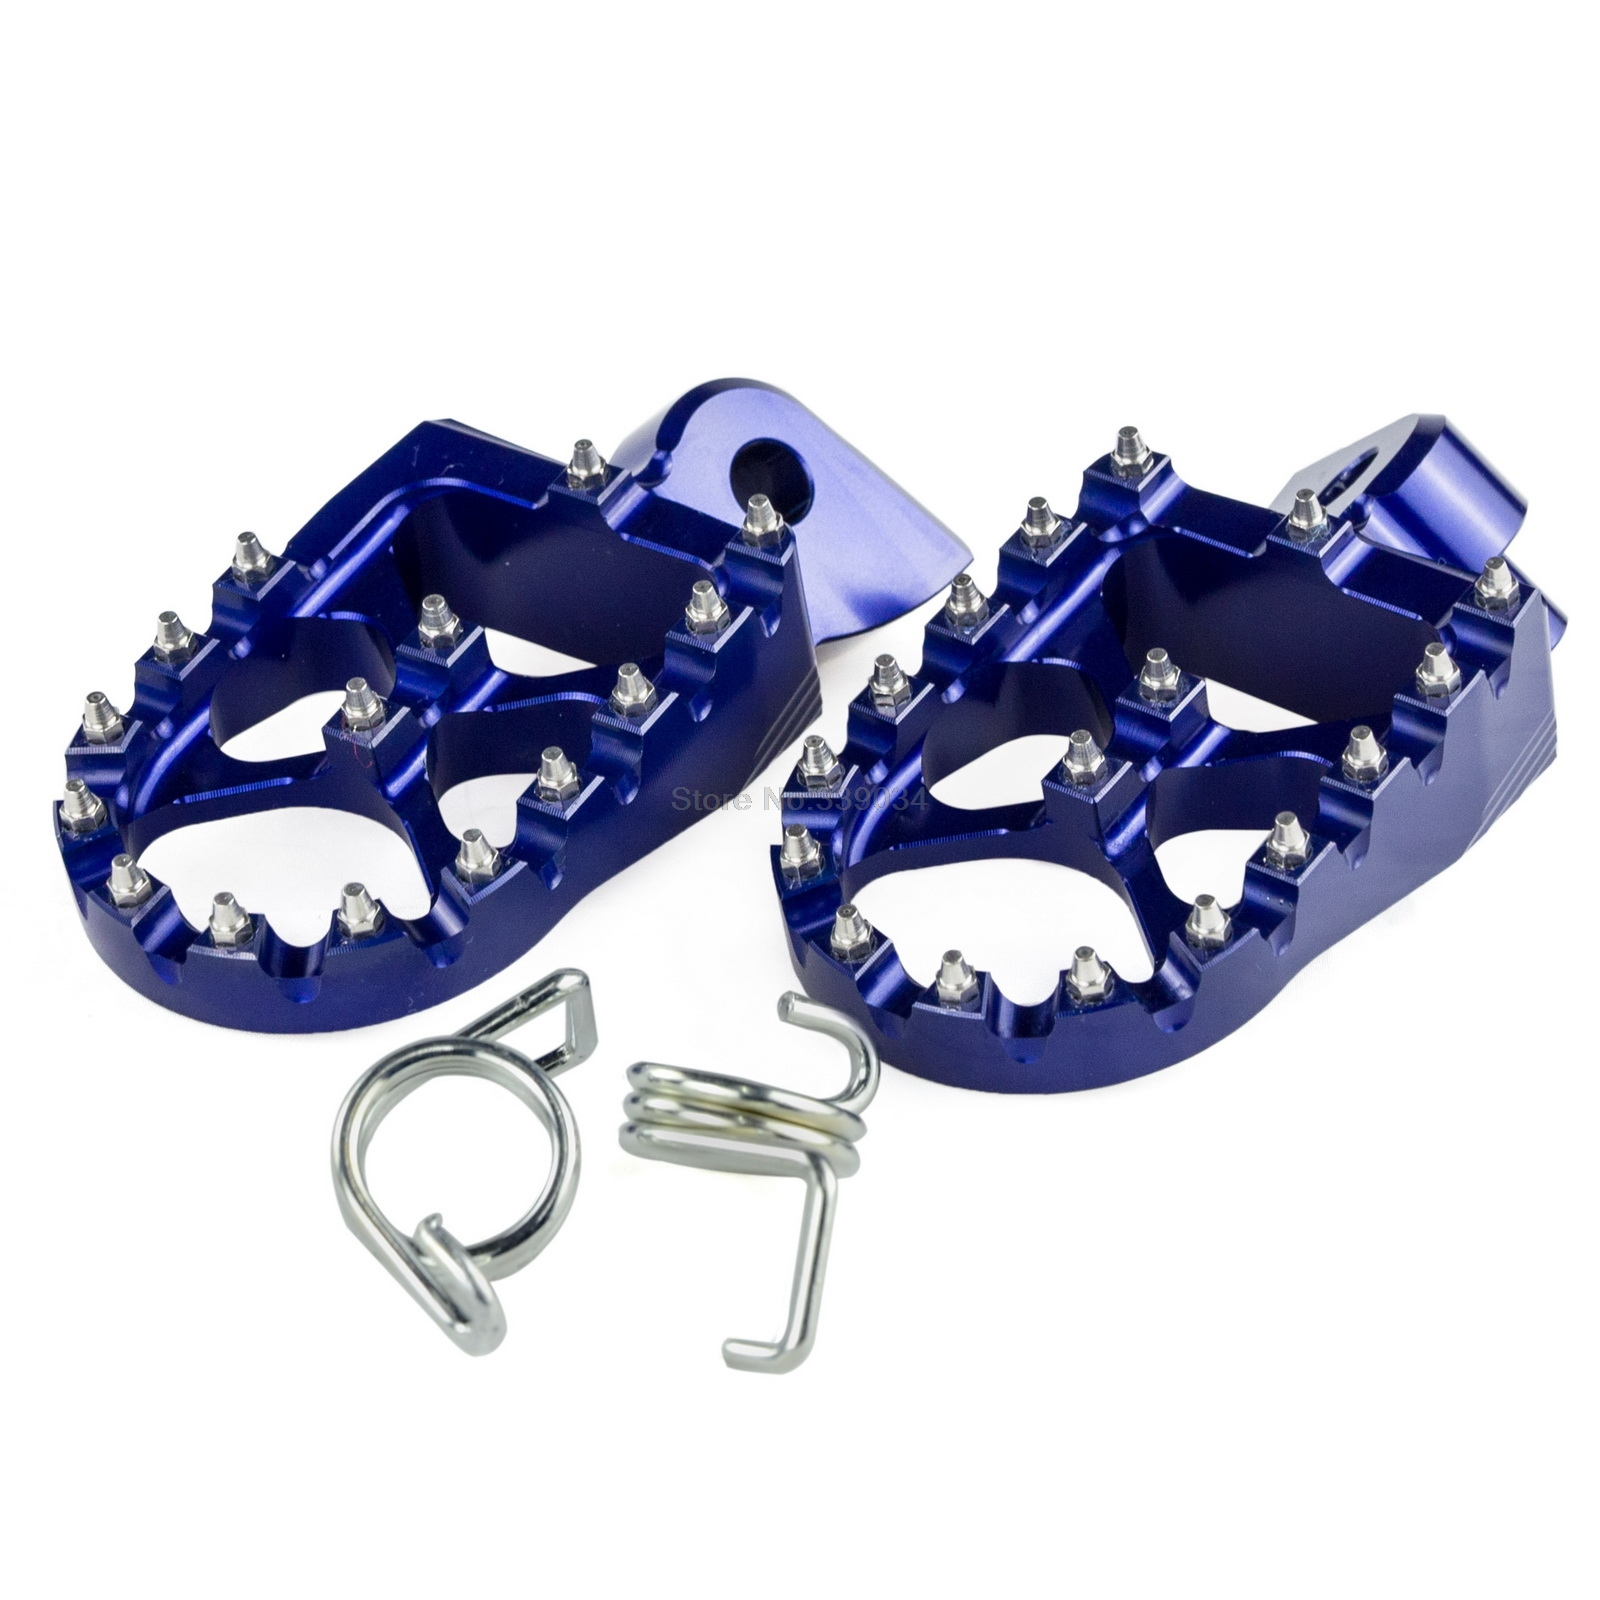 NICECNC 57mm Foot Pegs Foot Rests For Yamaha YZ 85 YZ125 YZ250 YZ125X YZ250X YZ250F YZ250FX